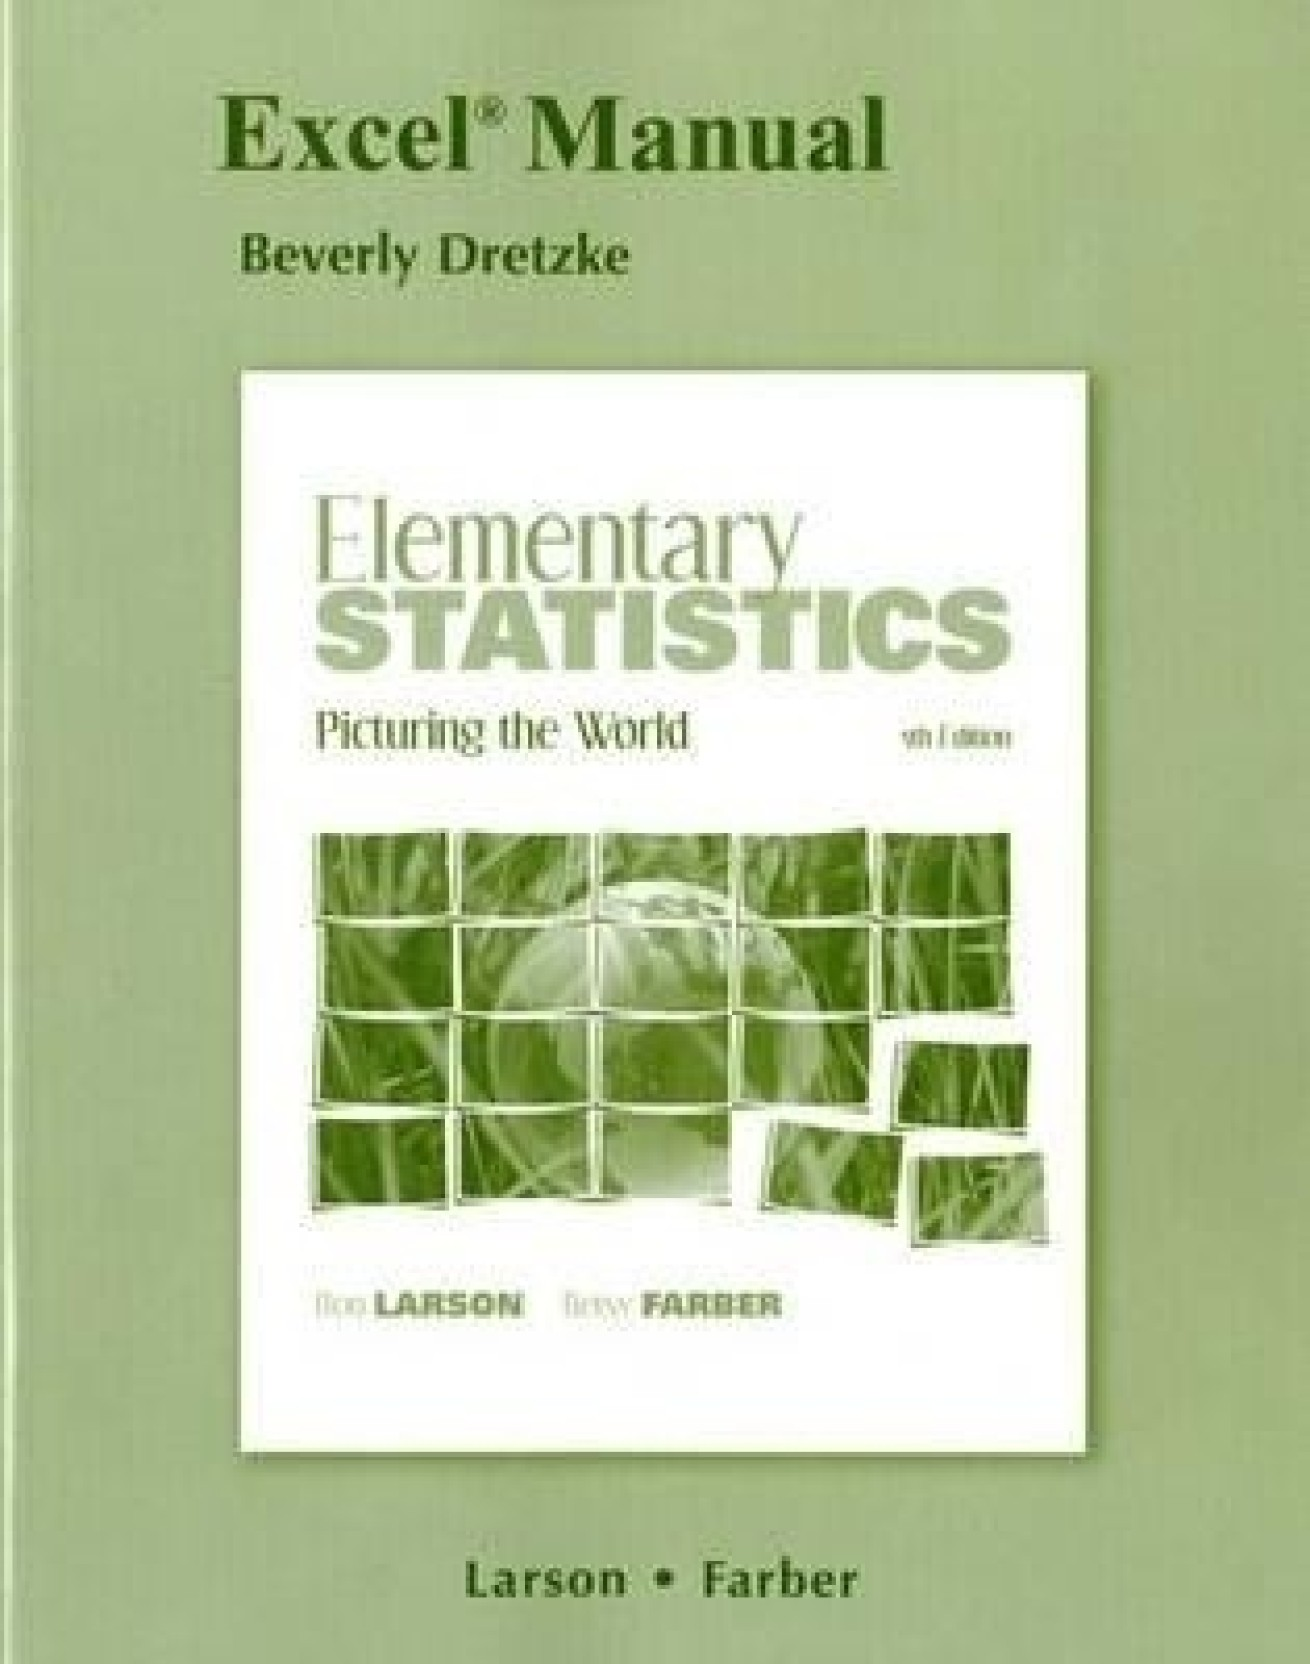 Excel Manual for Elementary Statistics: Picturing the World. Share